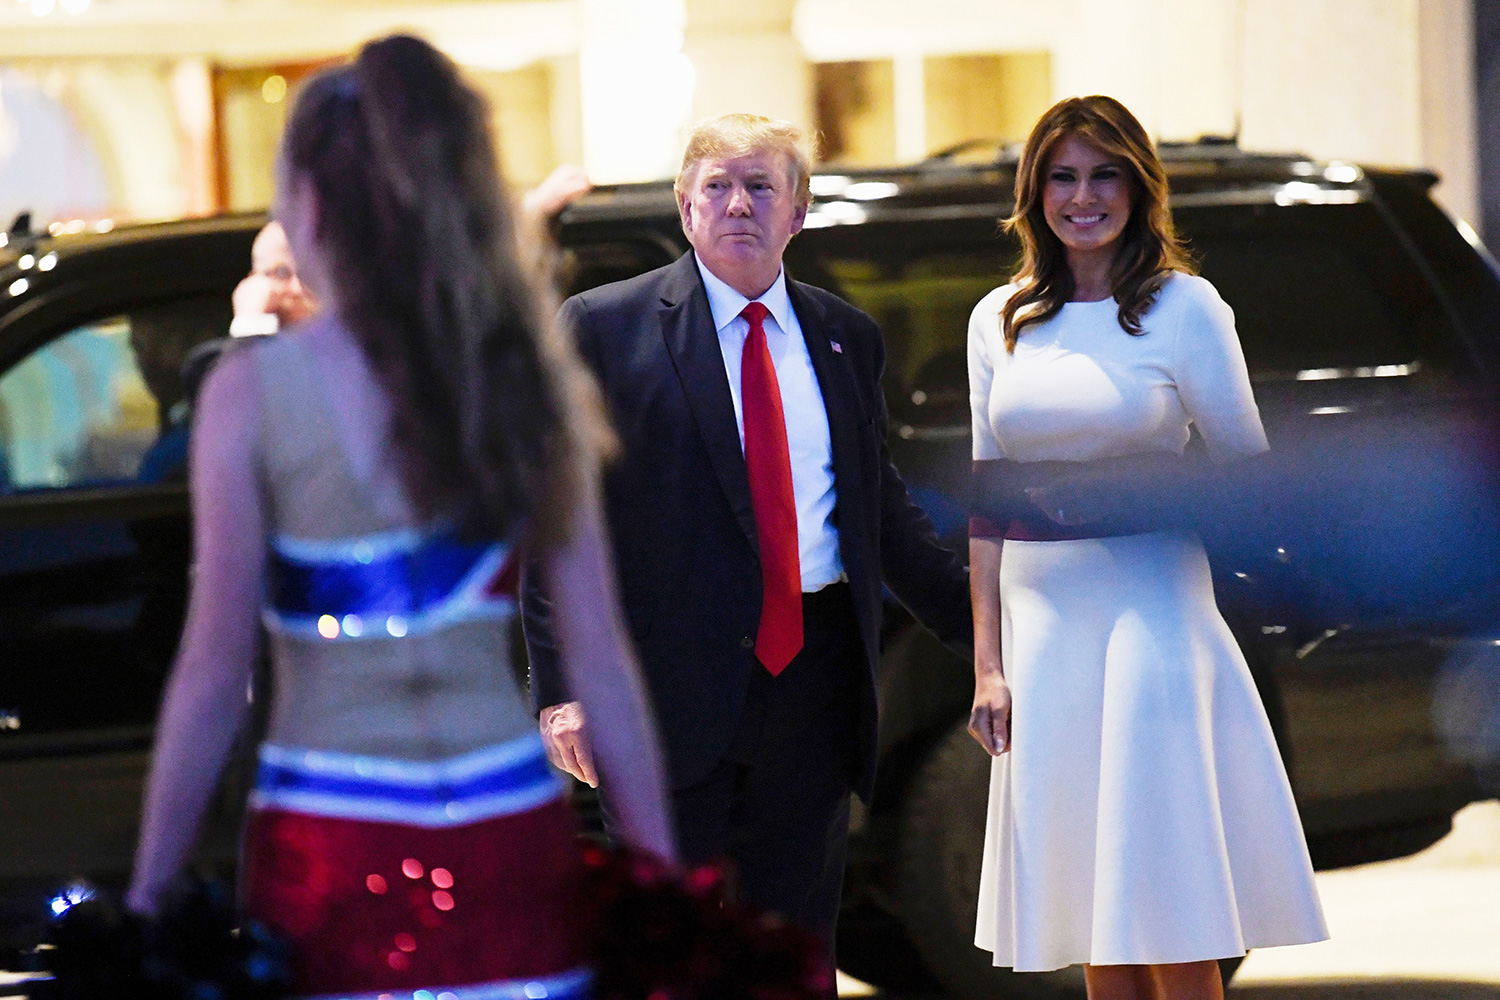 Donald Trump, Melania Trump. President Donald Trump and first lady Melania Trump watch as the Florida Atlantic University Marching Band performs at the Trump International Golf Club in West Palm Beach, Fla., . The Trumps are attending a Super Bowl party at the golf club Trump, West Palm Beach, USA - 02 Feb 2020